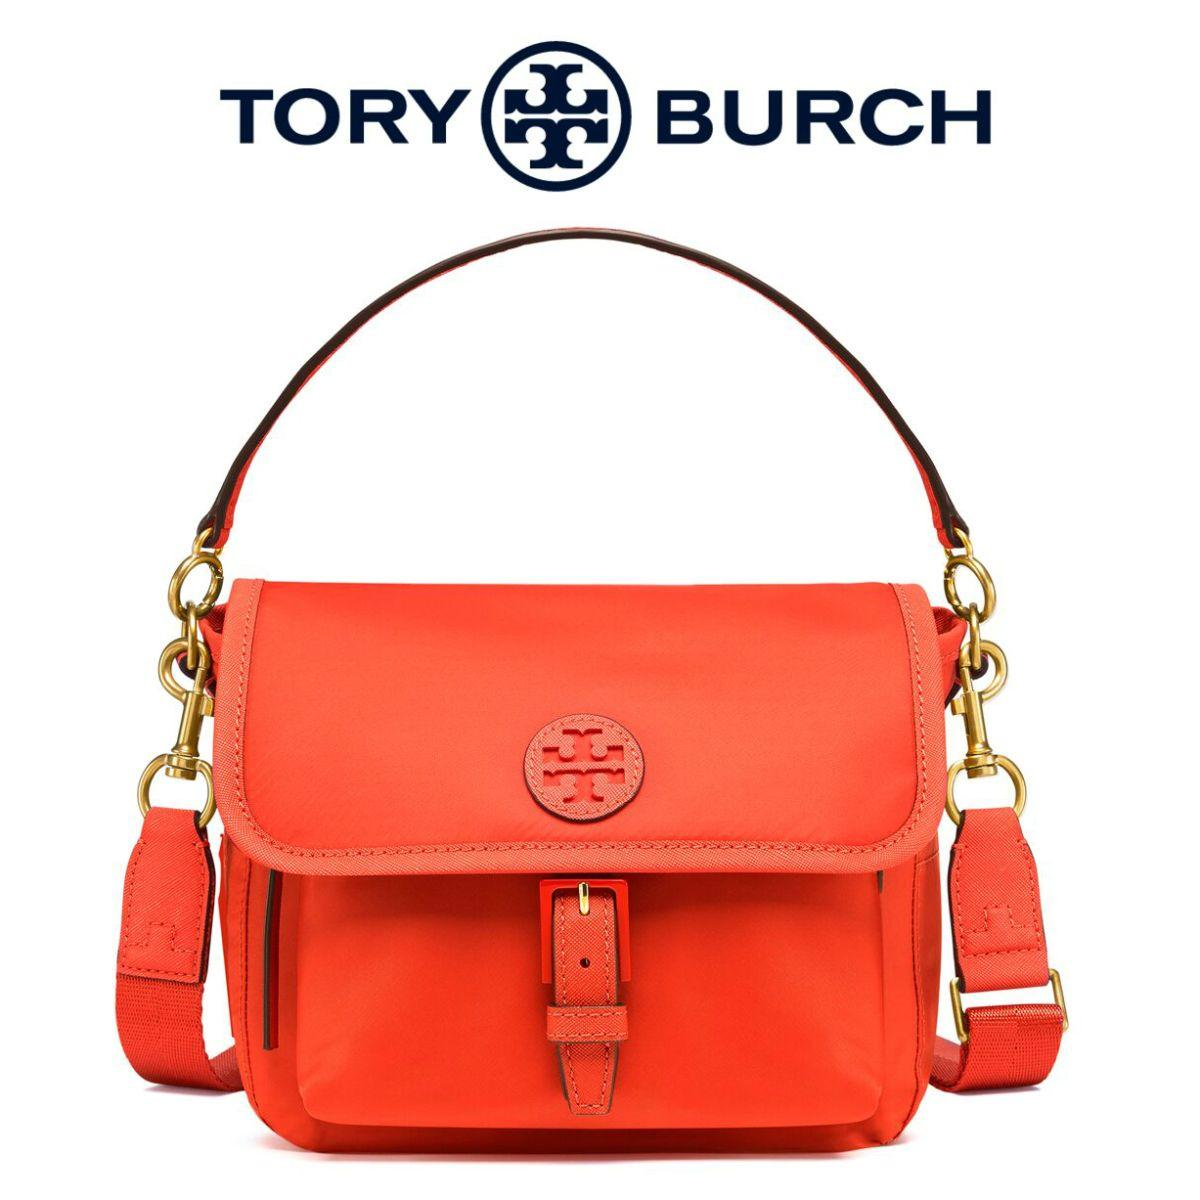 Tory Burch Promo Codes & Holiday Coupons for December, Save with 21 active Tory Burch promo codes, coupons, and free shipping deals. 🔥 Today's Top Deal: Take 20% Off On Your Order. On average, shoppers save $33 using Tory Burch coupons from choreadz.ml